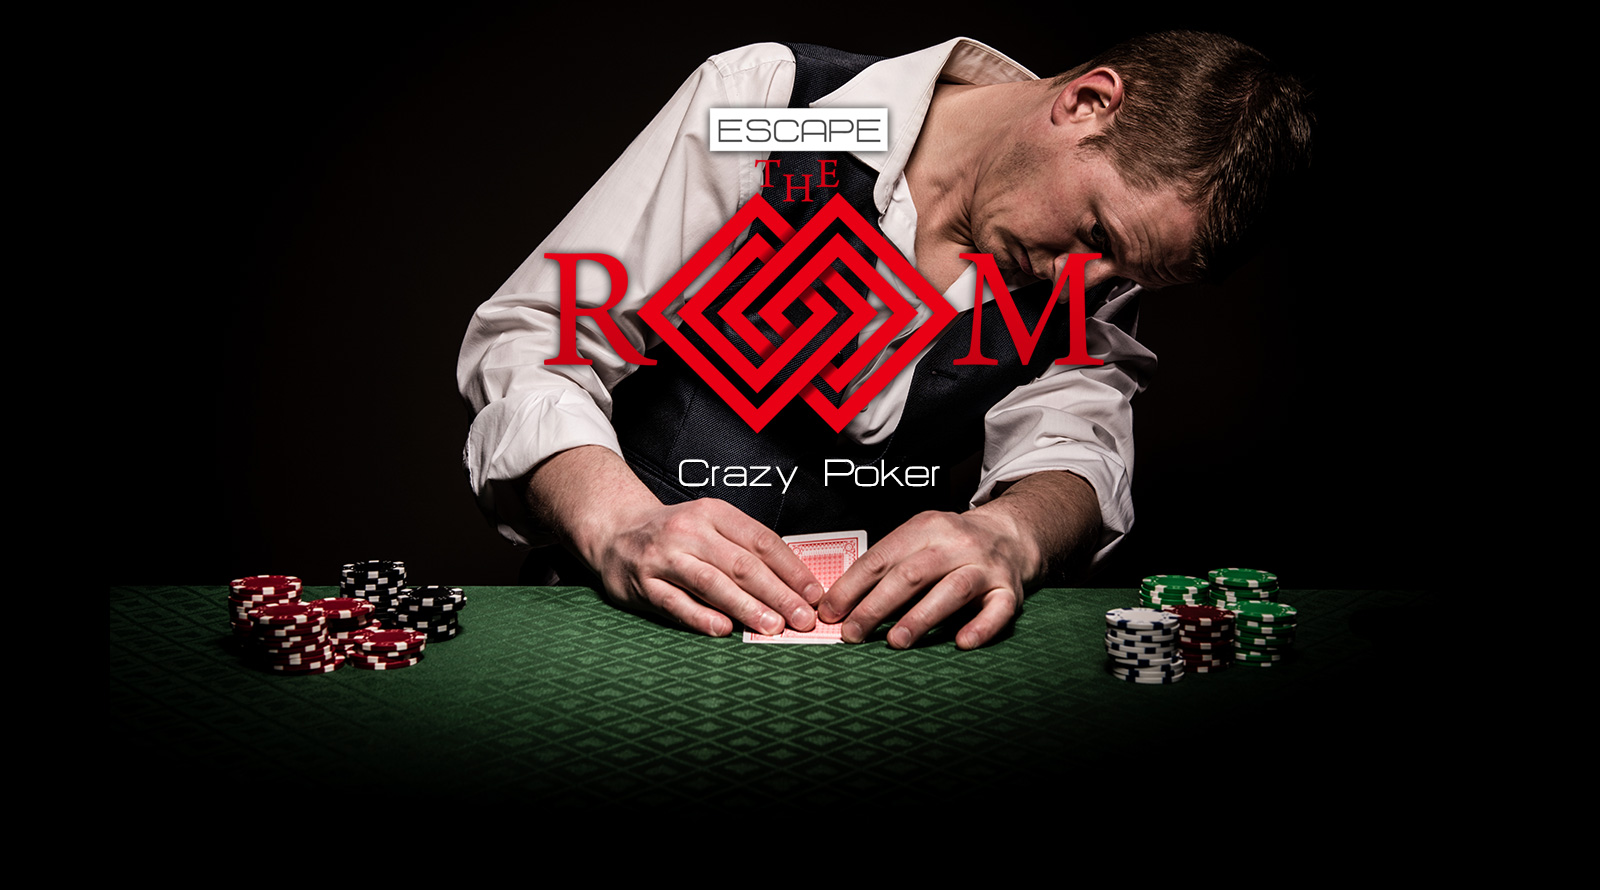 Escape the Room Exit Games Crazy Poker